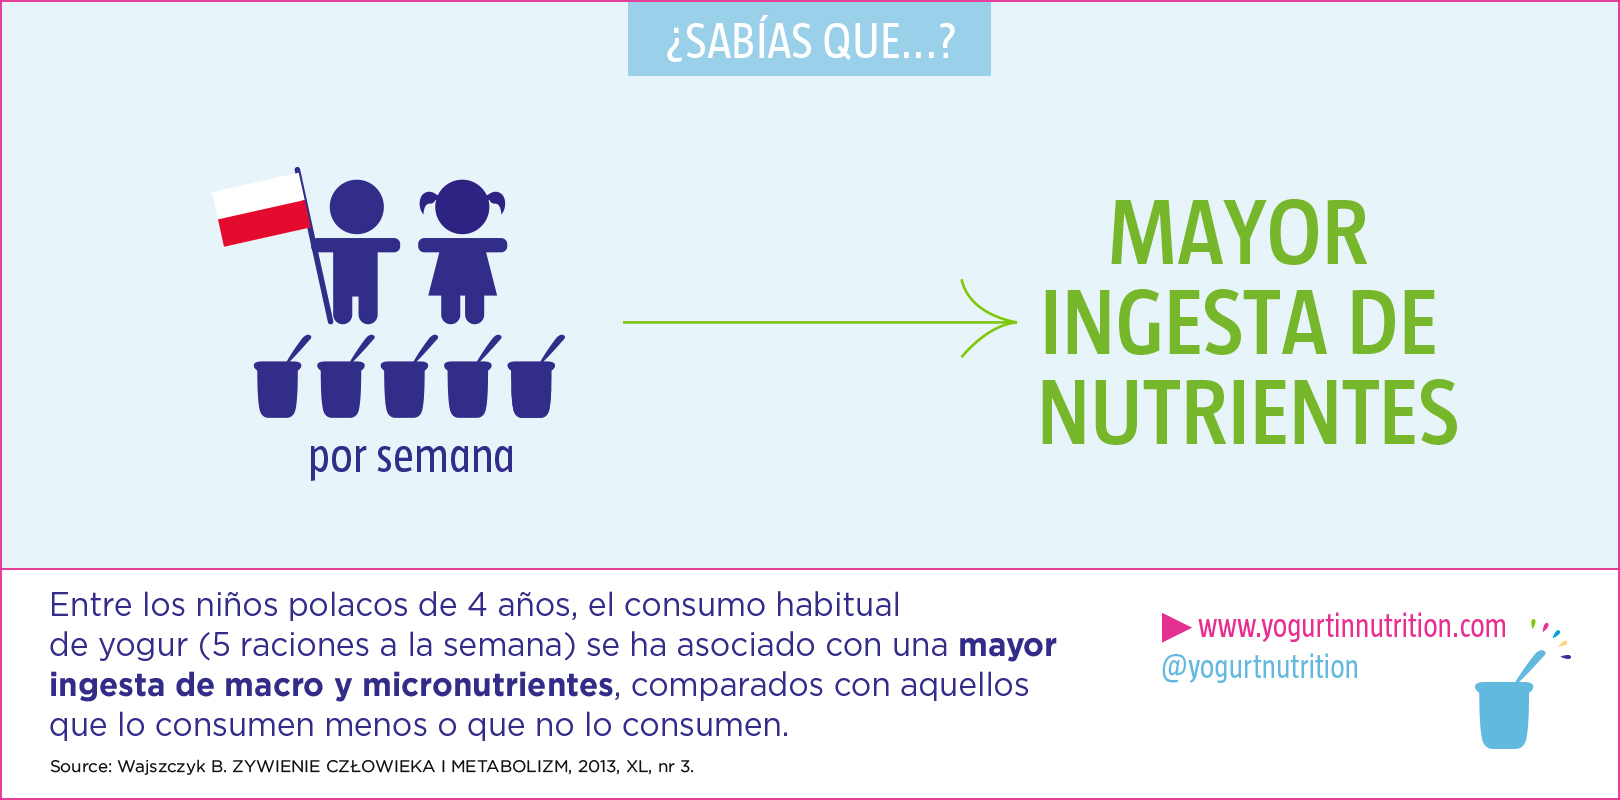 MAYOR INGESTA DE NUTRIENTES